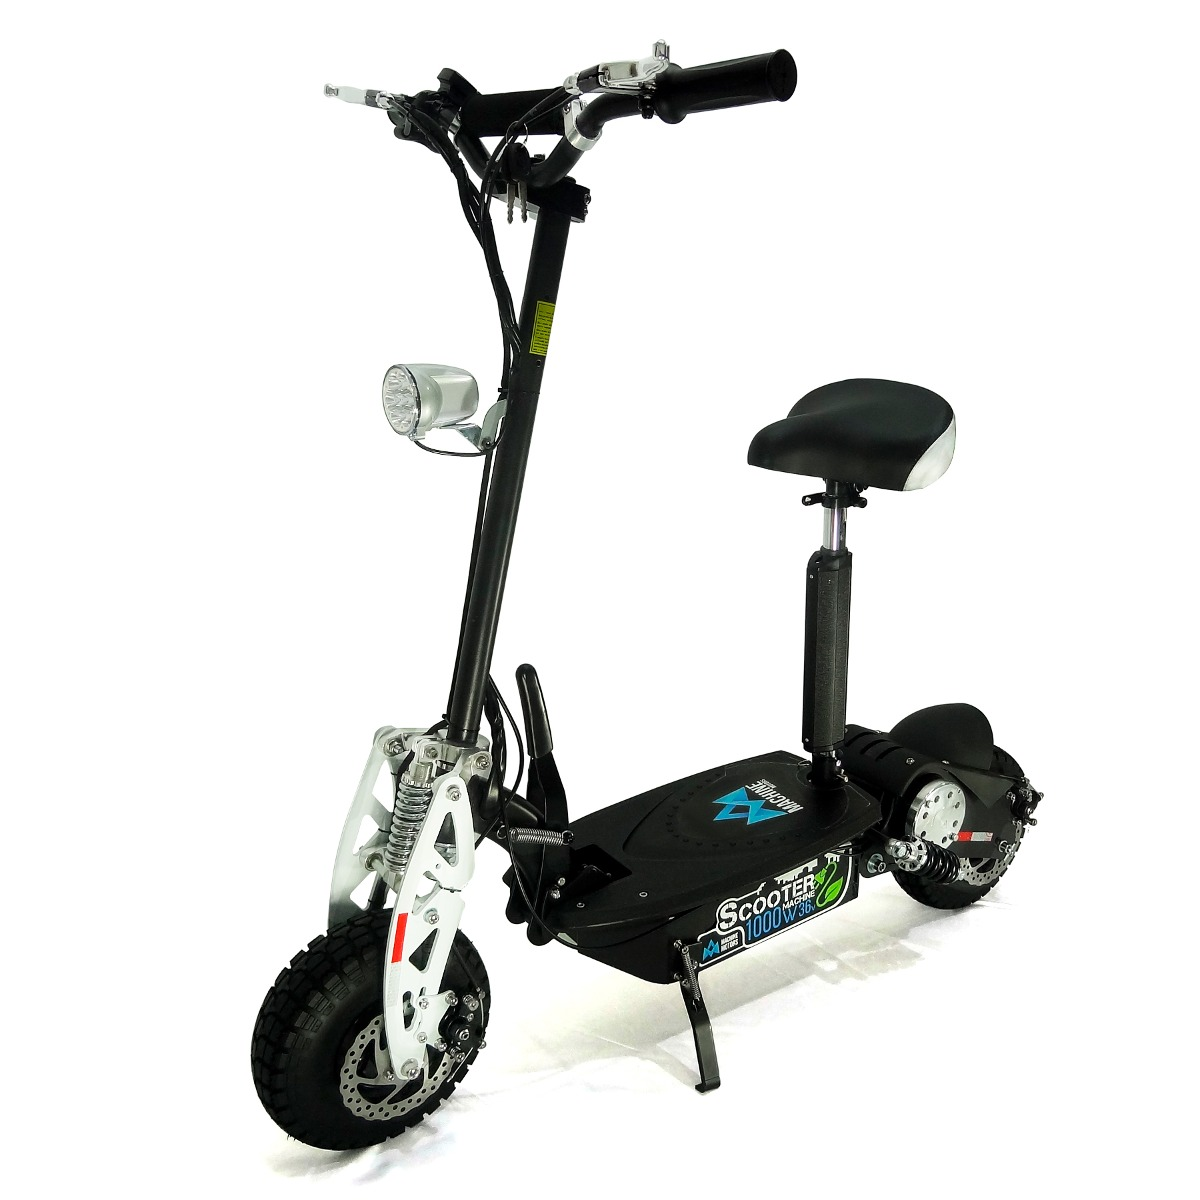 a3efefa837a Scooter Elétrico Patinete Machine Motors 1000w 36v Preto - R  3.890 ...